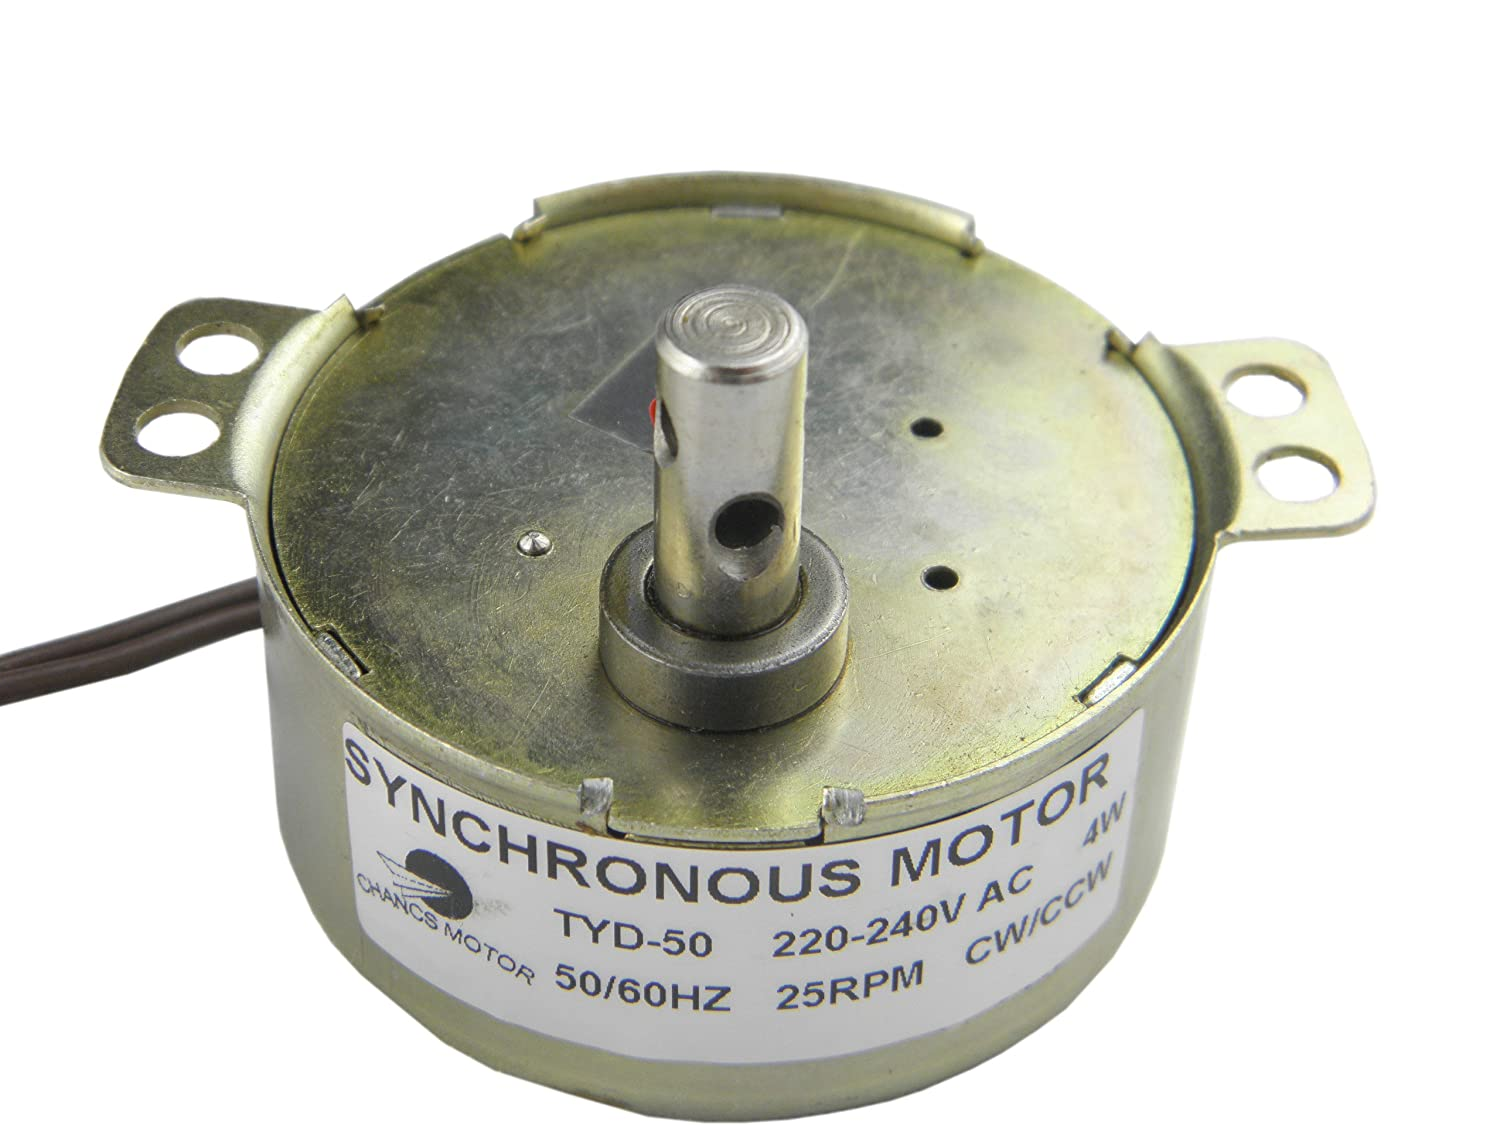 Tyd 50 Low Speed Synchronous Motor 25 Rpm 220 240v Cw Ccw Ac Small 220volt Rotari Gear Garden Outdoors